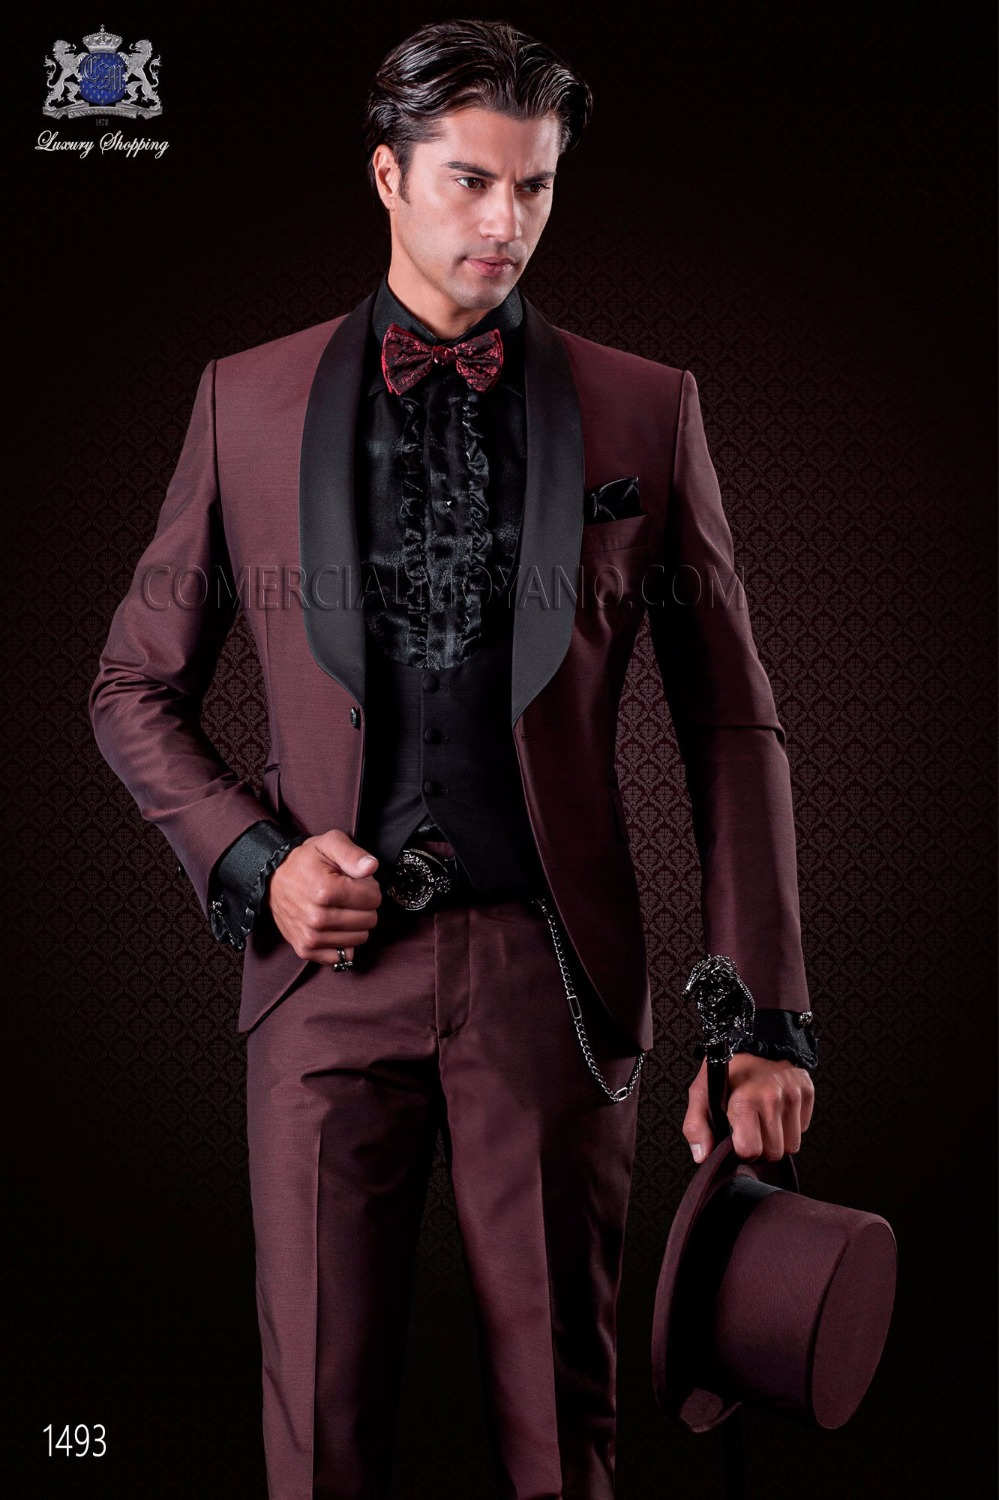 Latest Coat Pant Designs Italian Burgundy Wedding Suits For Men Slim Fit 3 Piece Tuxedo Custom Groom Prom Blazer Terno Masculino